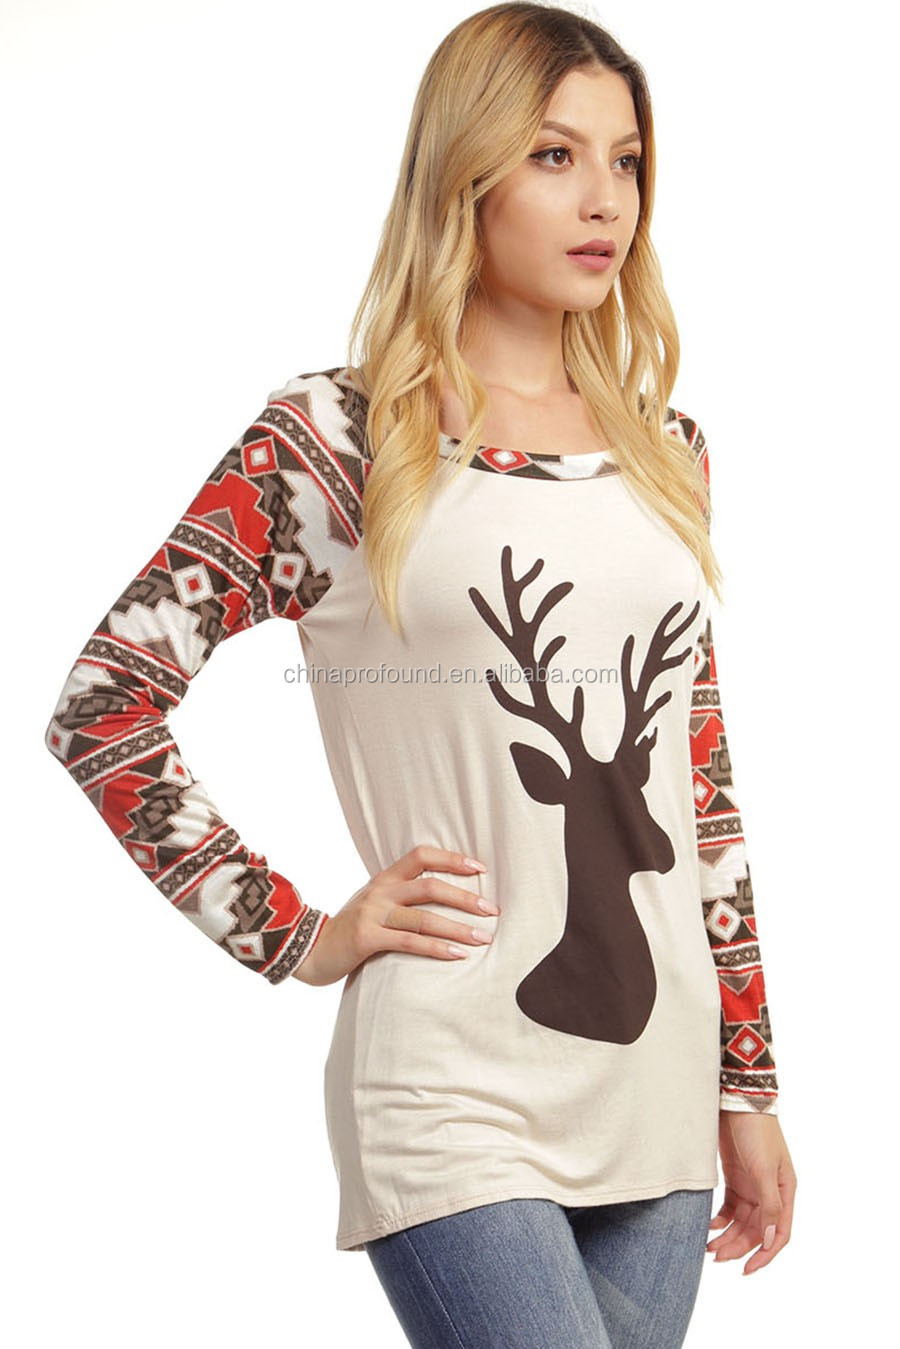 long sleeve 100 cotton christmas New Fashion deer printing fitted t shirt woman oversized jersey tee shirt for women 2016